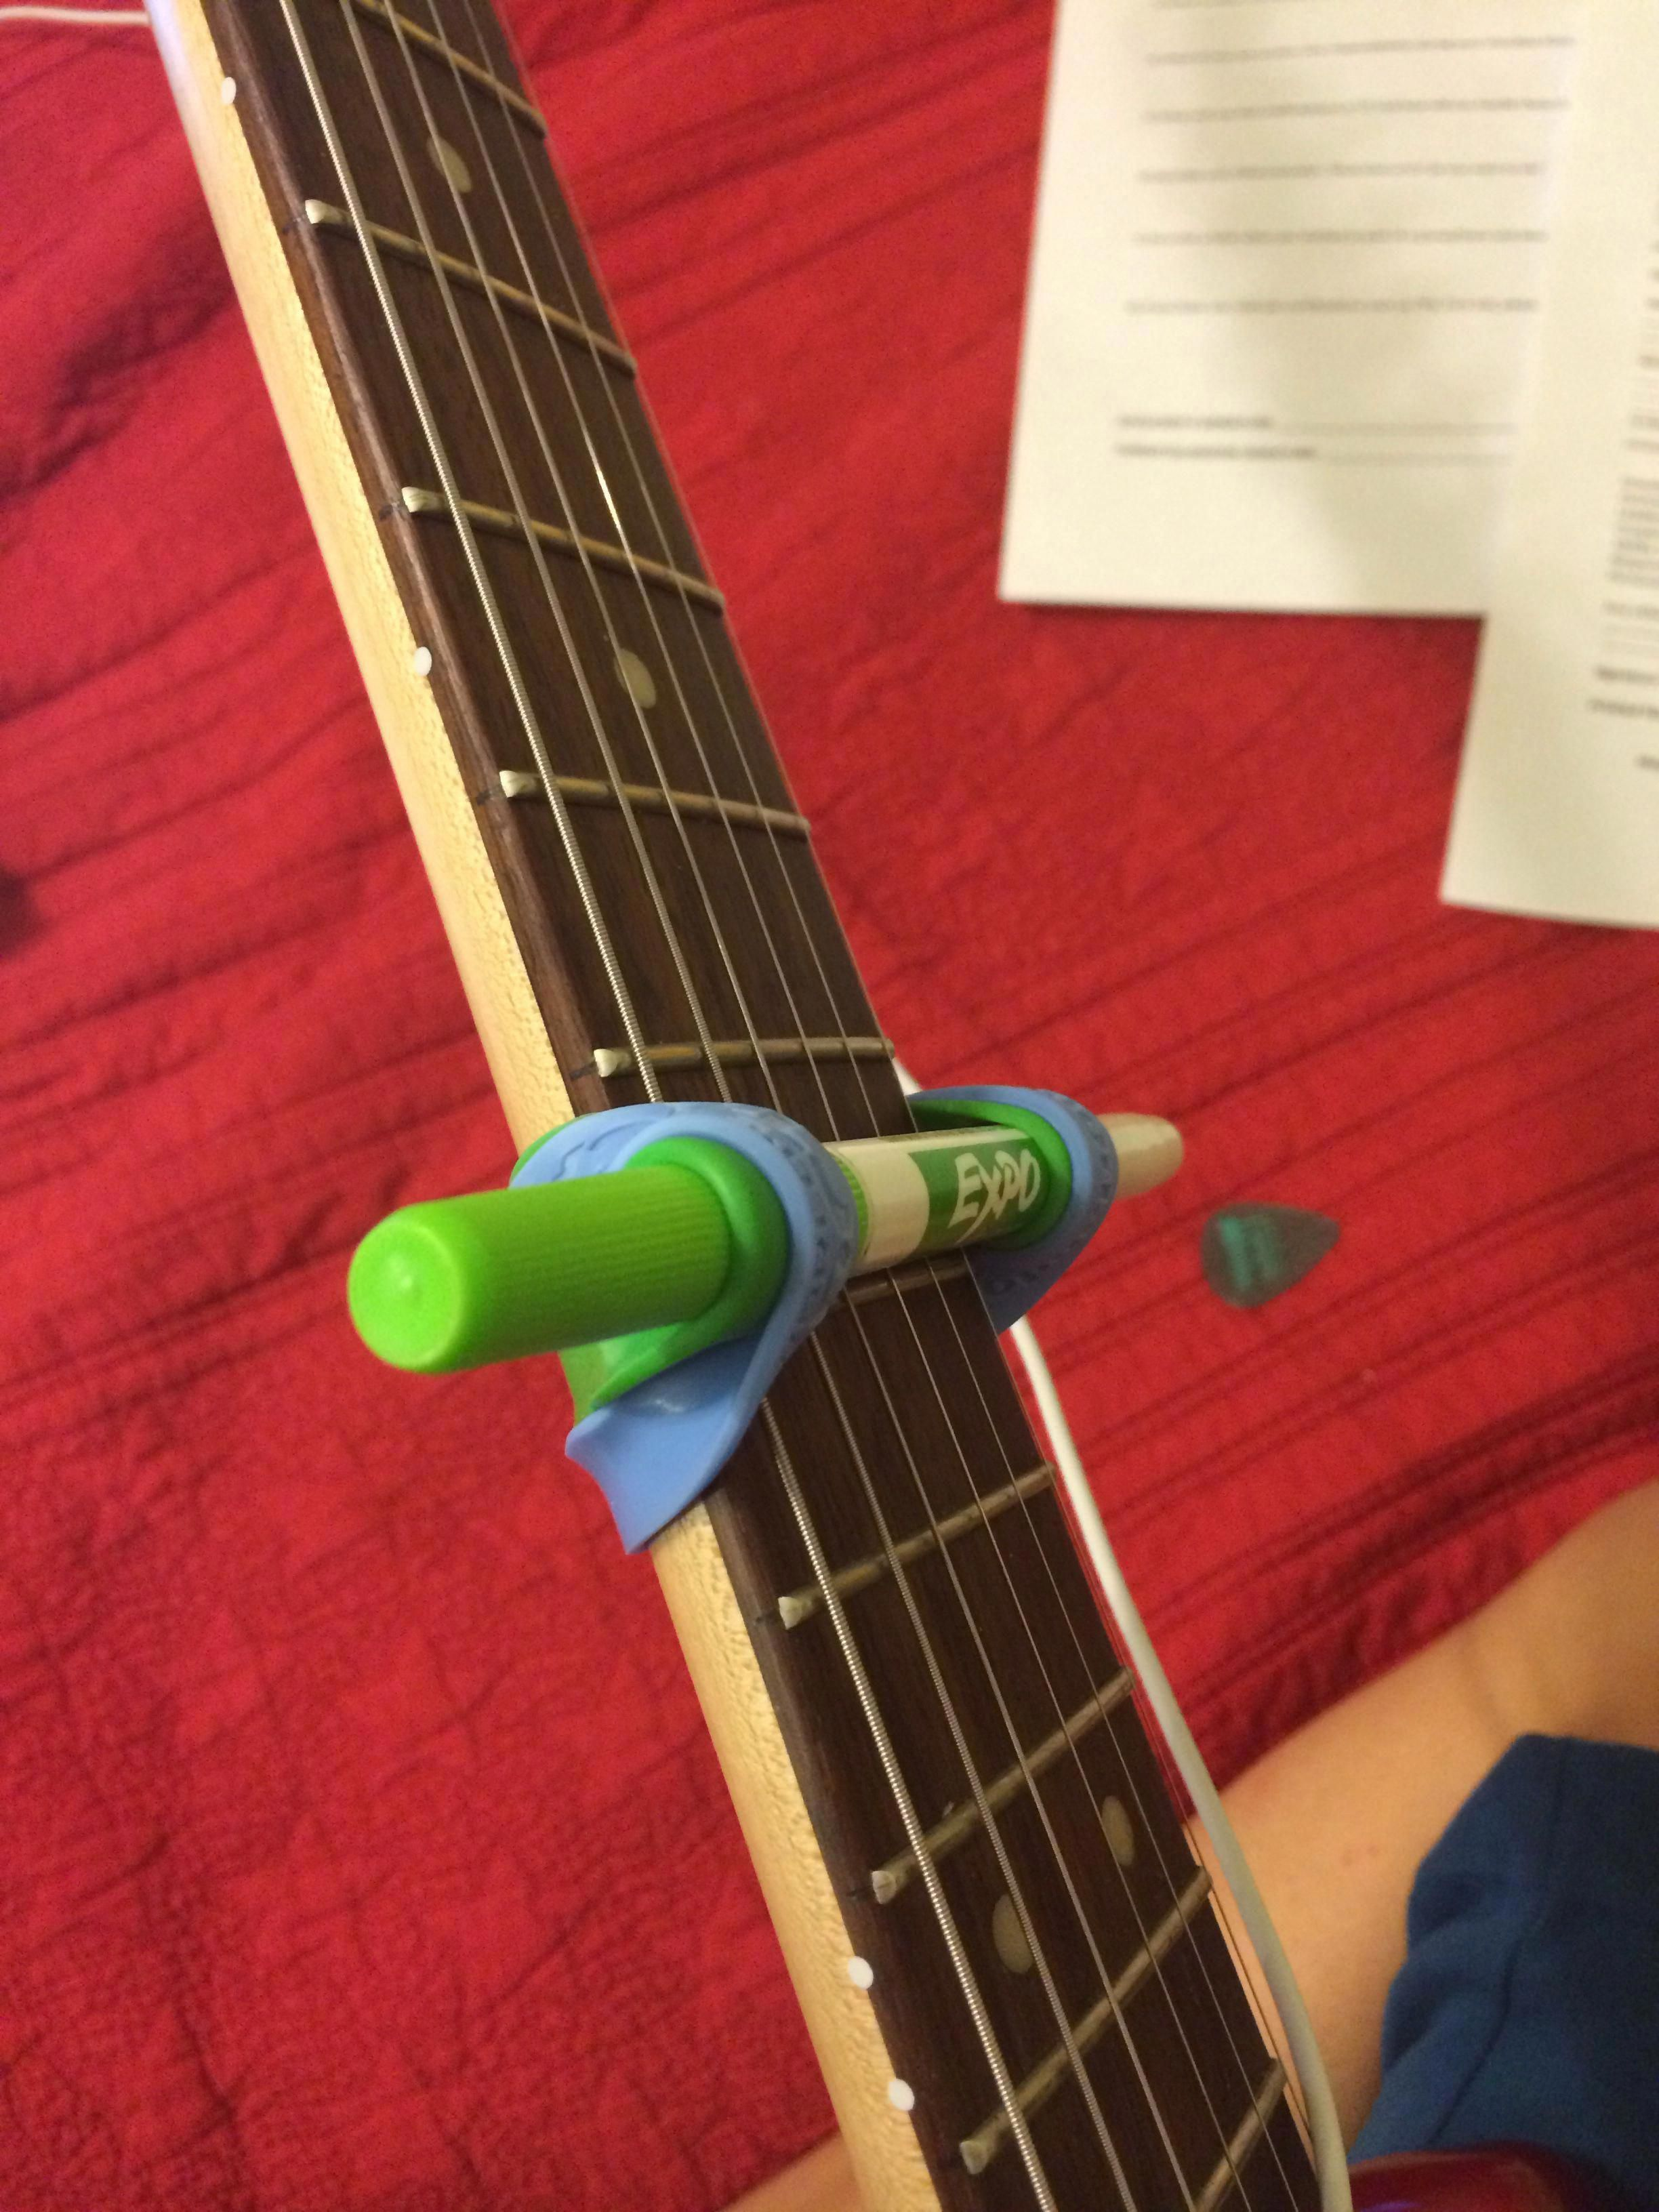 Diy Guitar Capo One Marker And Two Rubber Wrist Bands In Case I